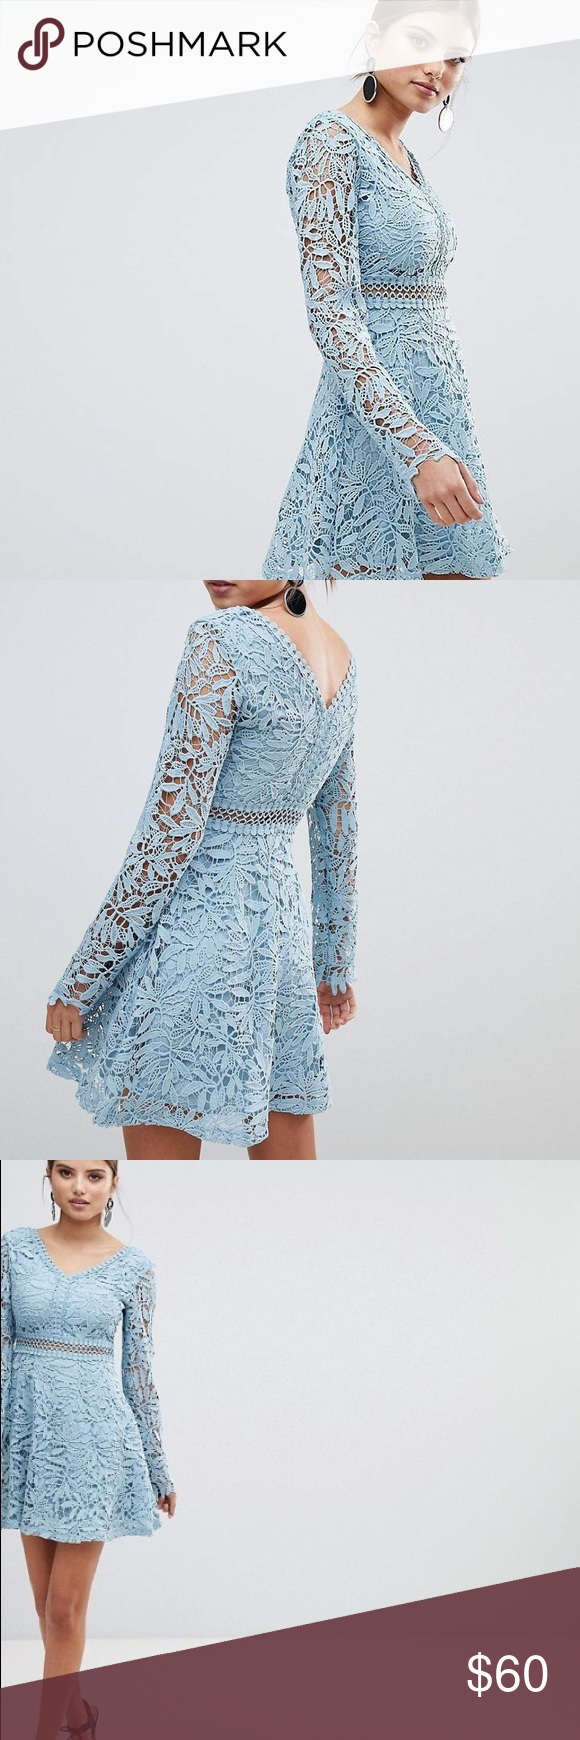 af5faf69cc30 Boohoo Crochet Lace Long Sleeve Skater Dress Boohoo Crochet Lace Long  Sleeve Skater Dress Boohoo Dresses